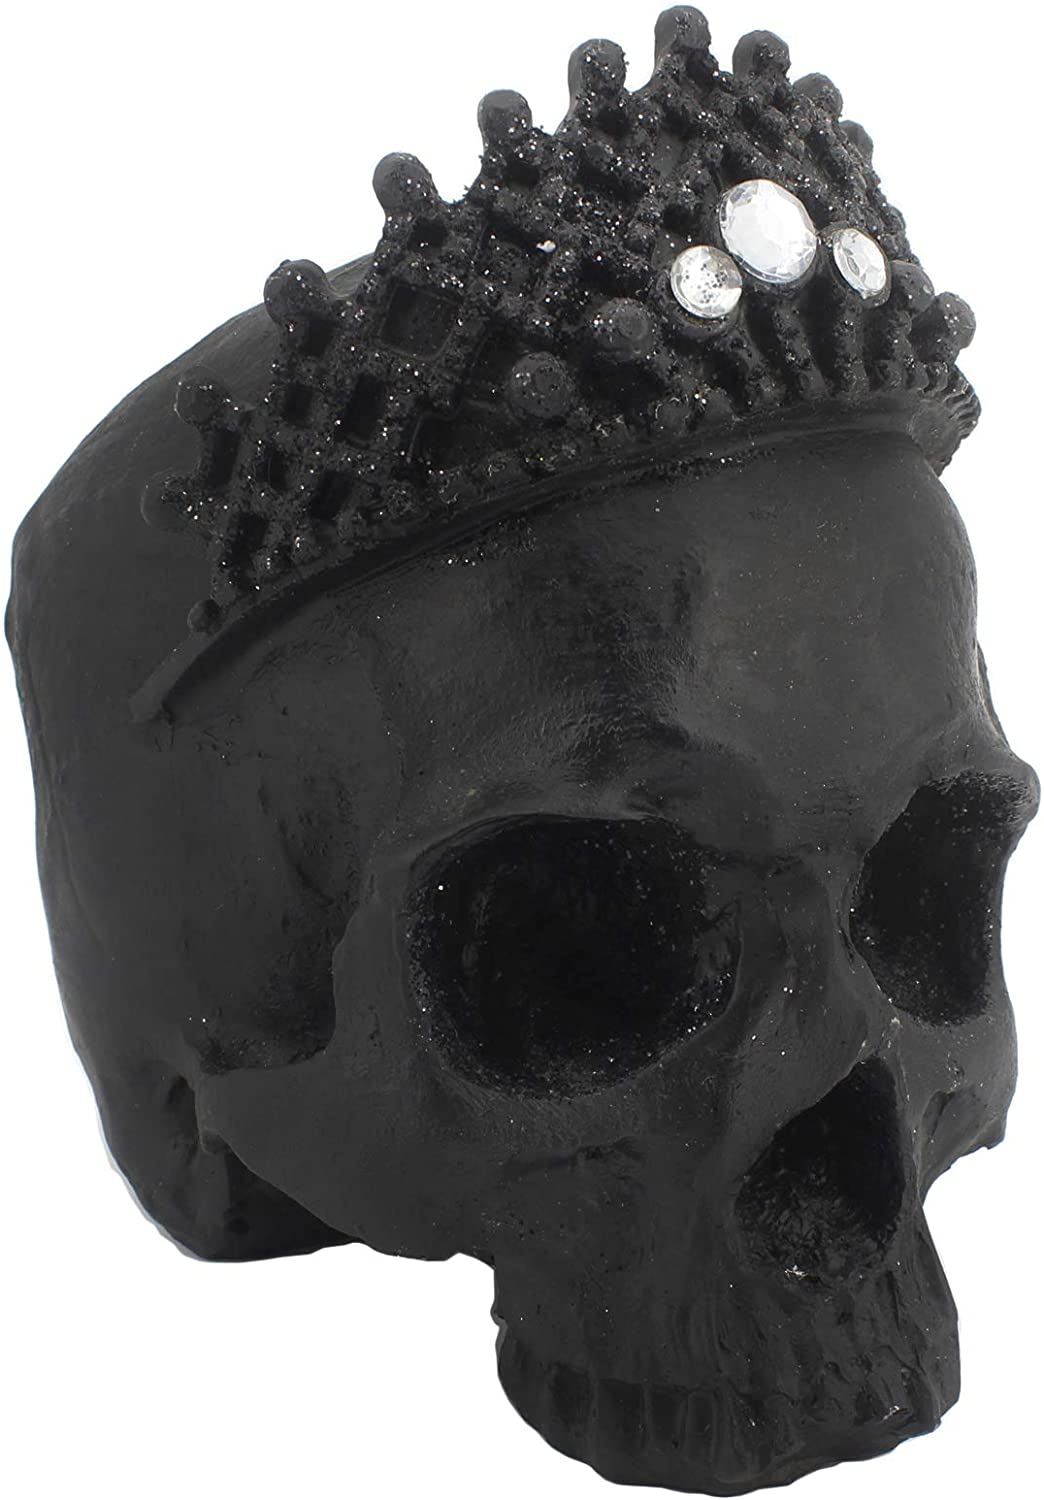 2CFUN Halloween Skull Decor Fake Human Skull Head for Halloween Table Decorations (Black)